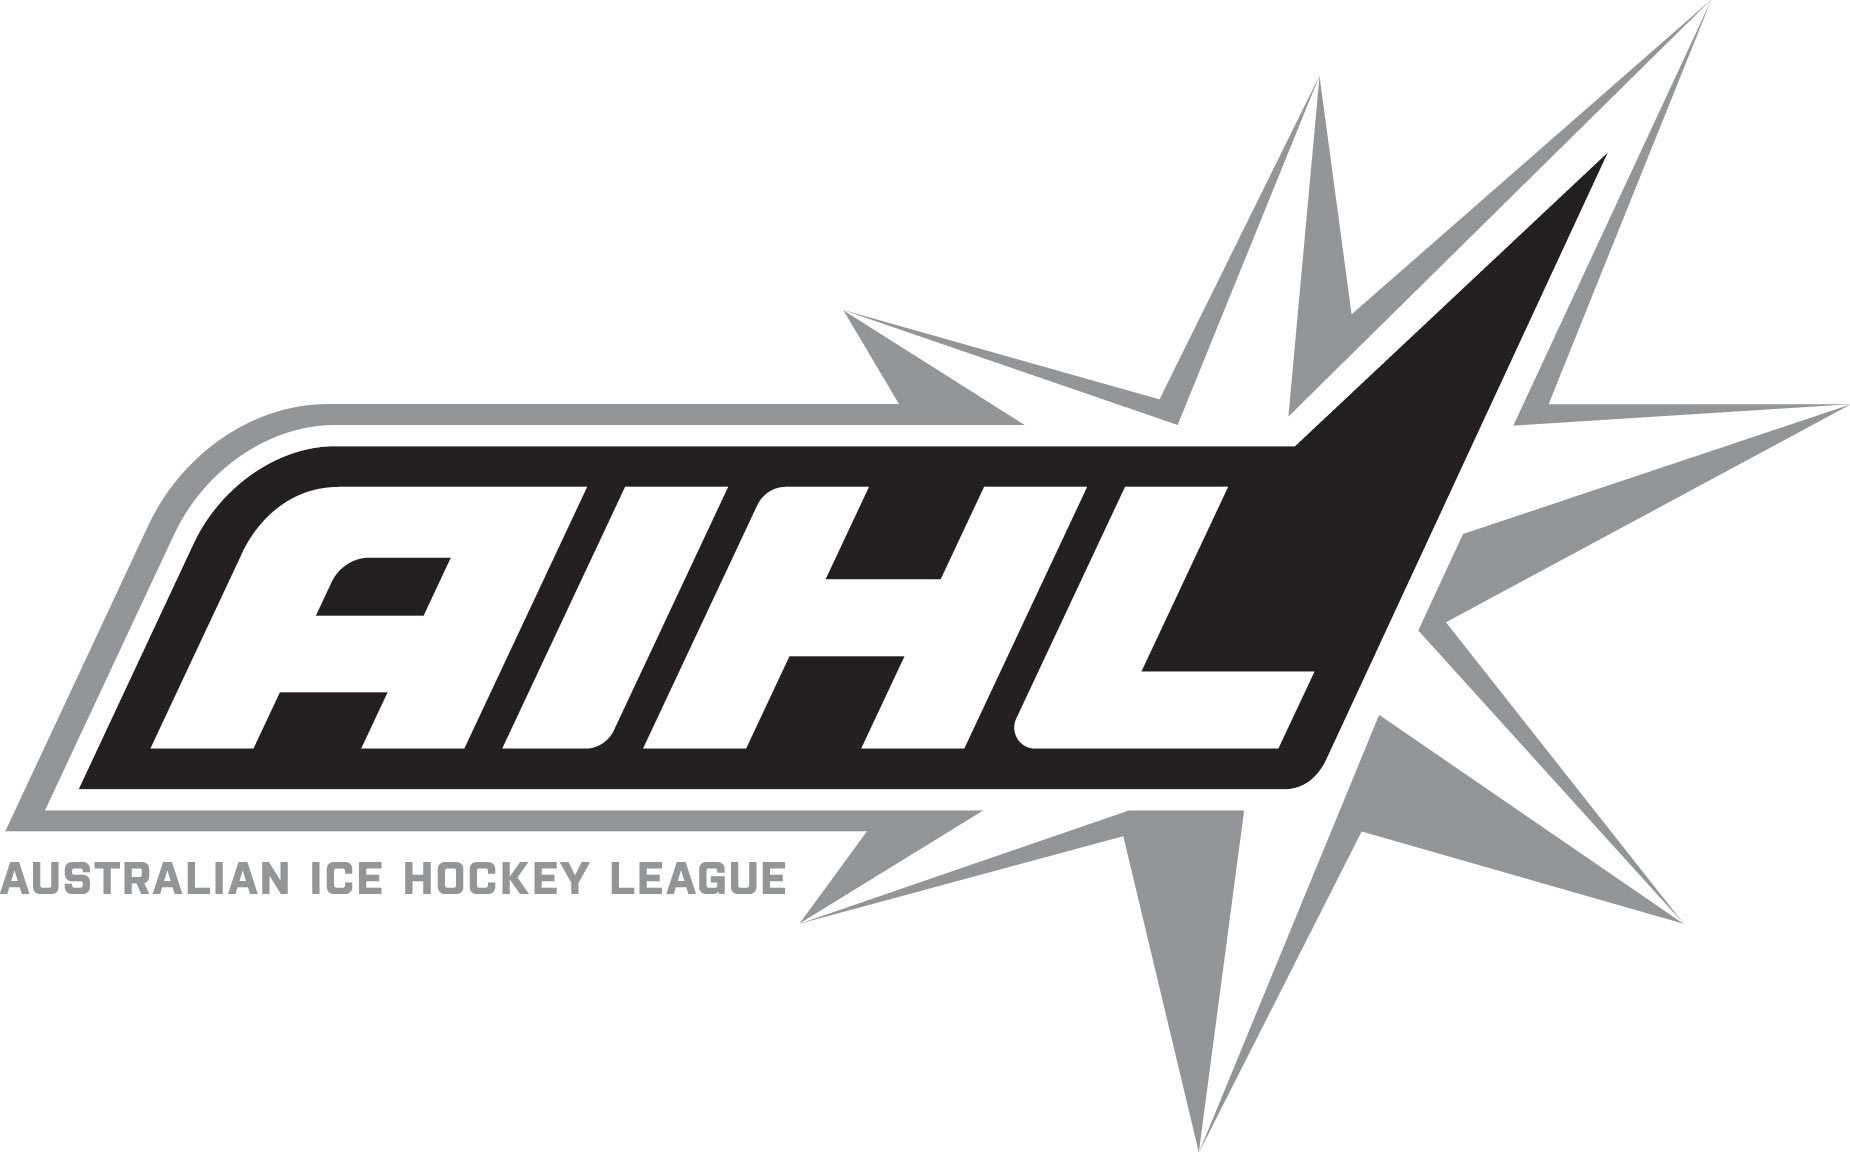 Australian Ice Hockey League logo